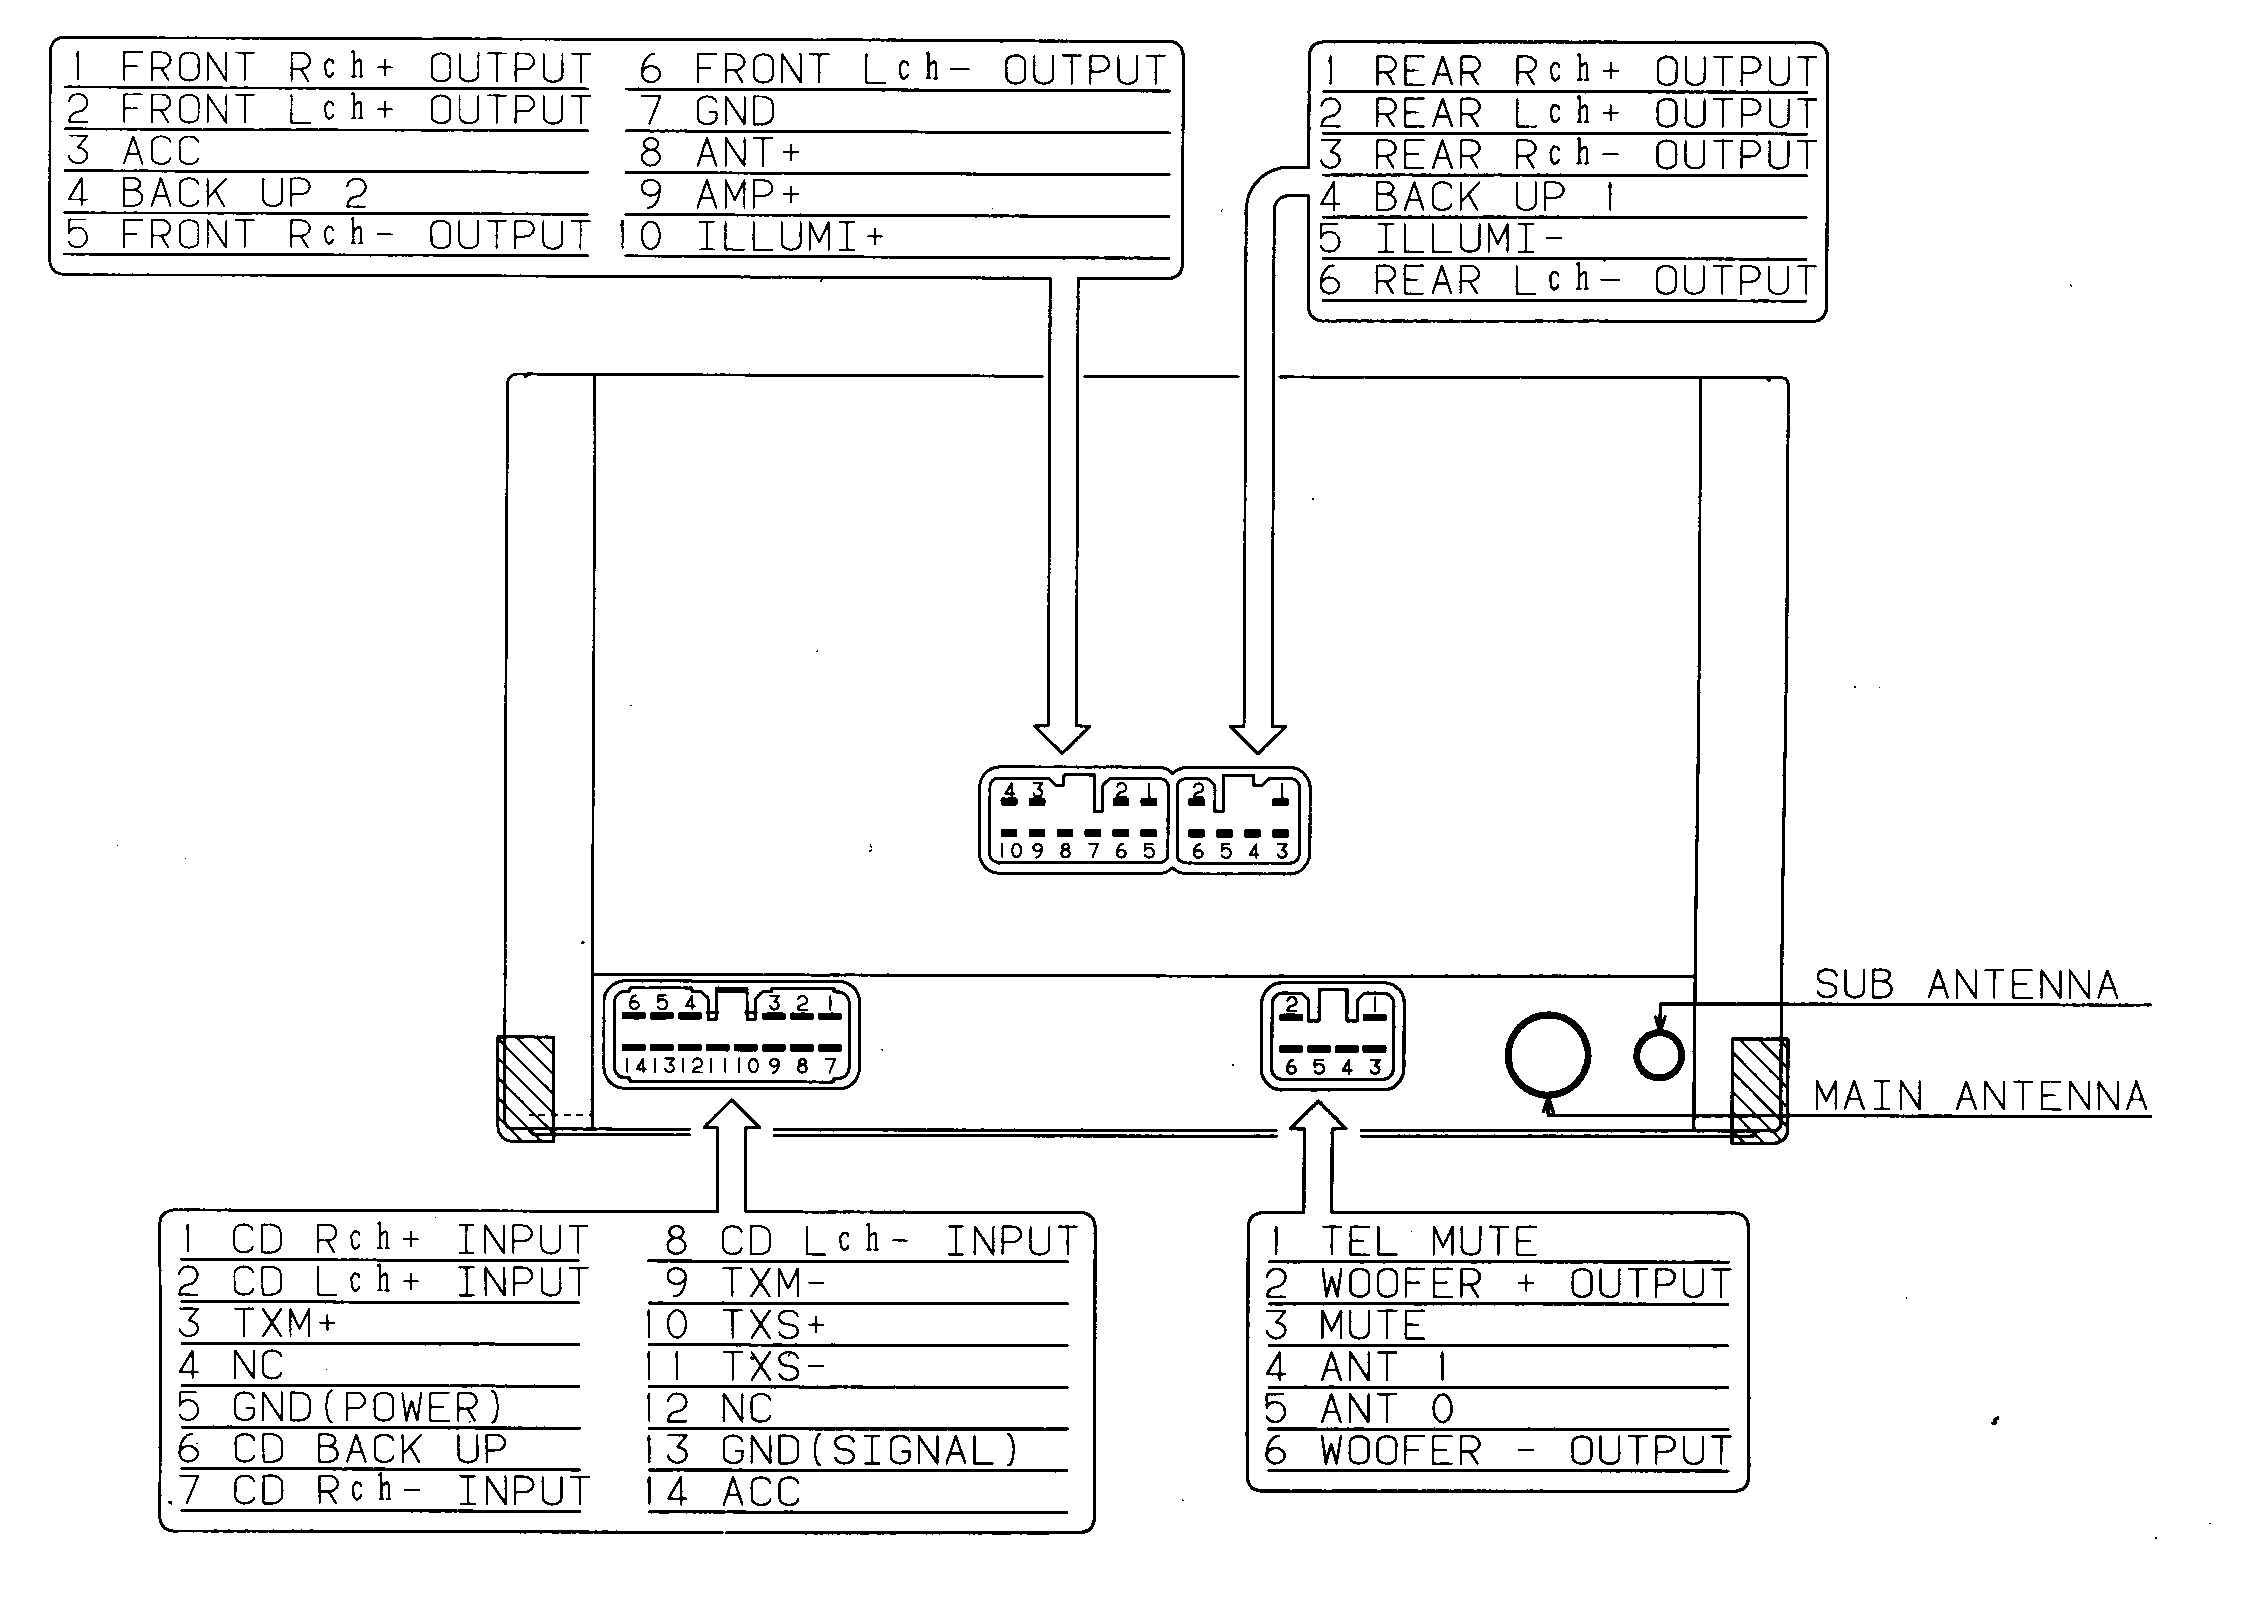 Lexus car stereo wiring diagram harness pinout connector wire nissan almera ecu pinout nissan tps wiring diagram with template Lexus SC300 Engine at soozxer.org